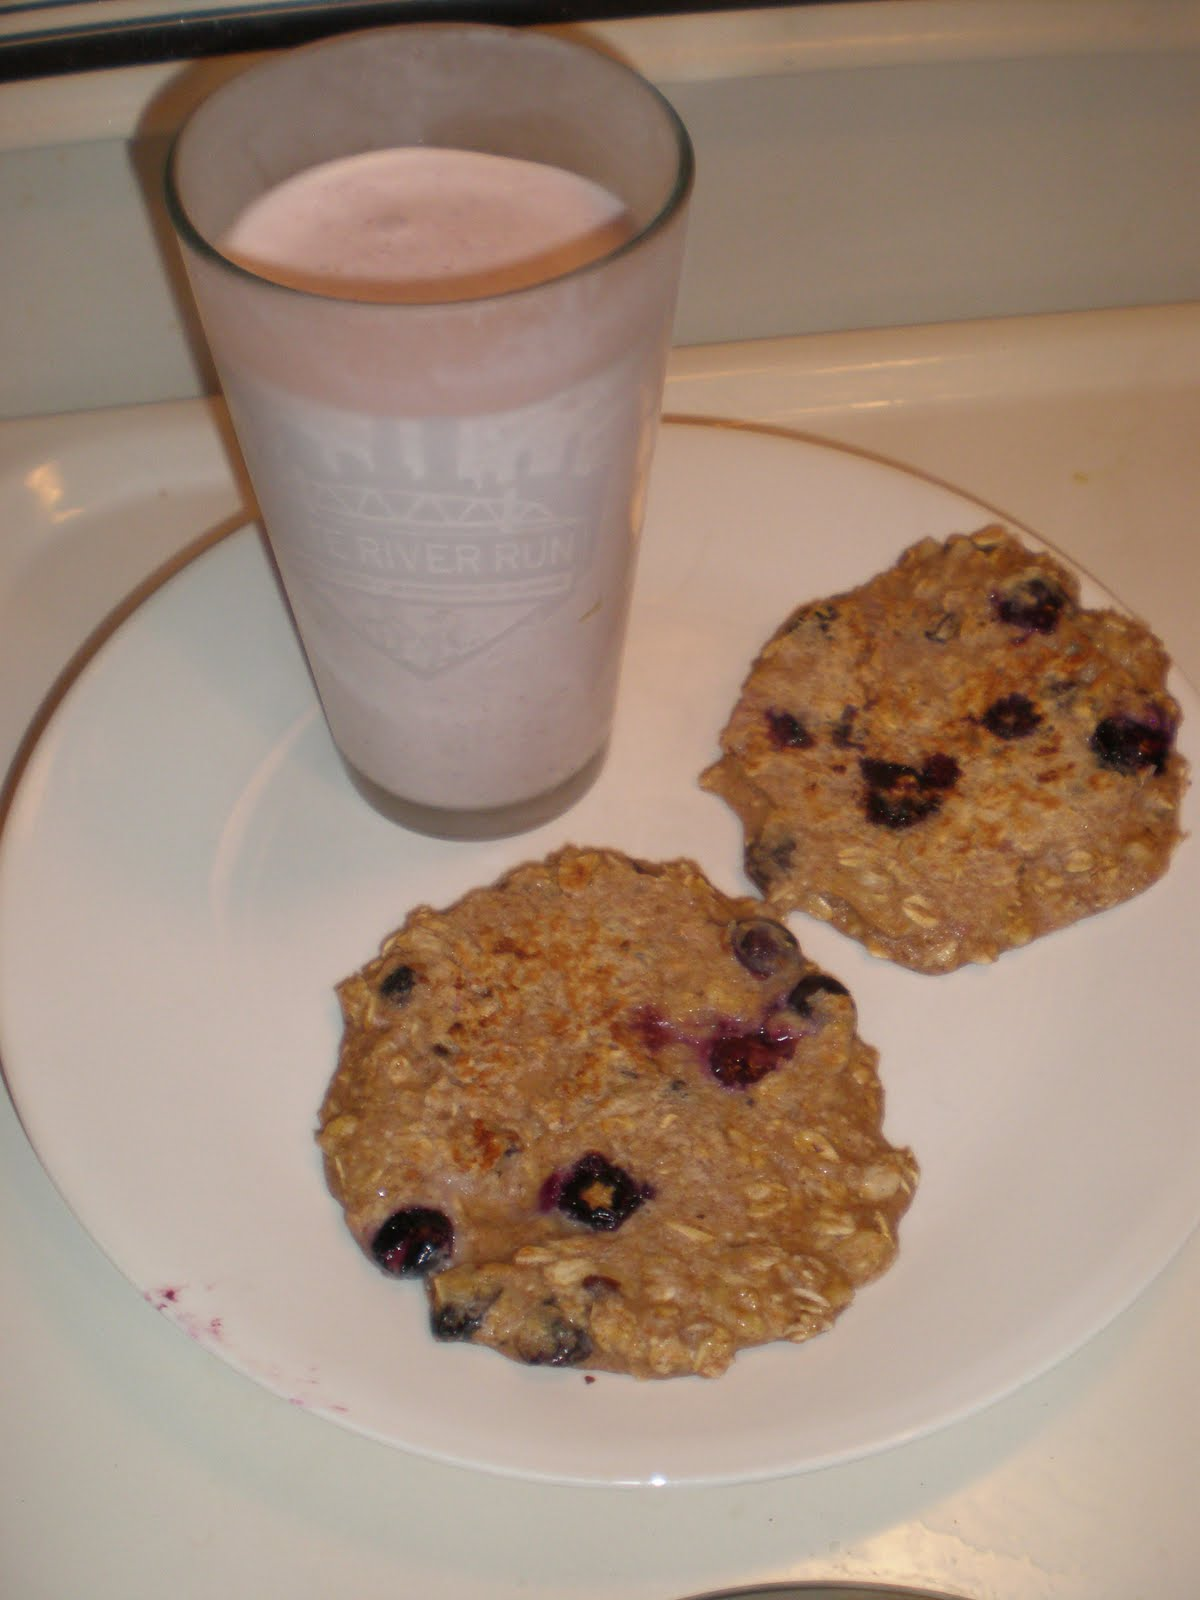 ... Creations: Post workout strawberry smoothie & Blueberry oat pancakes